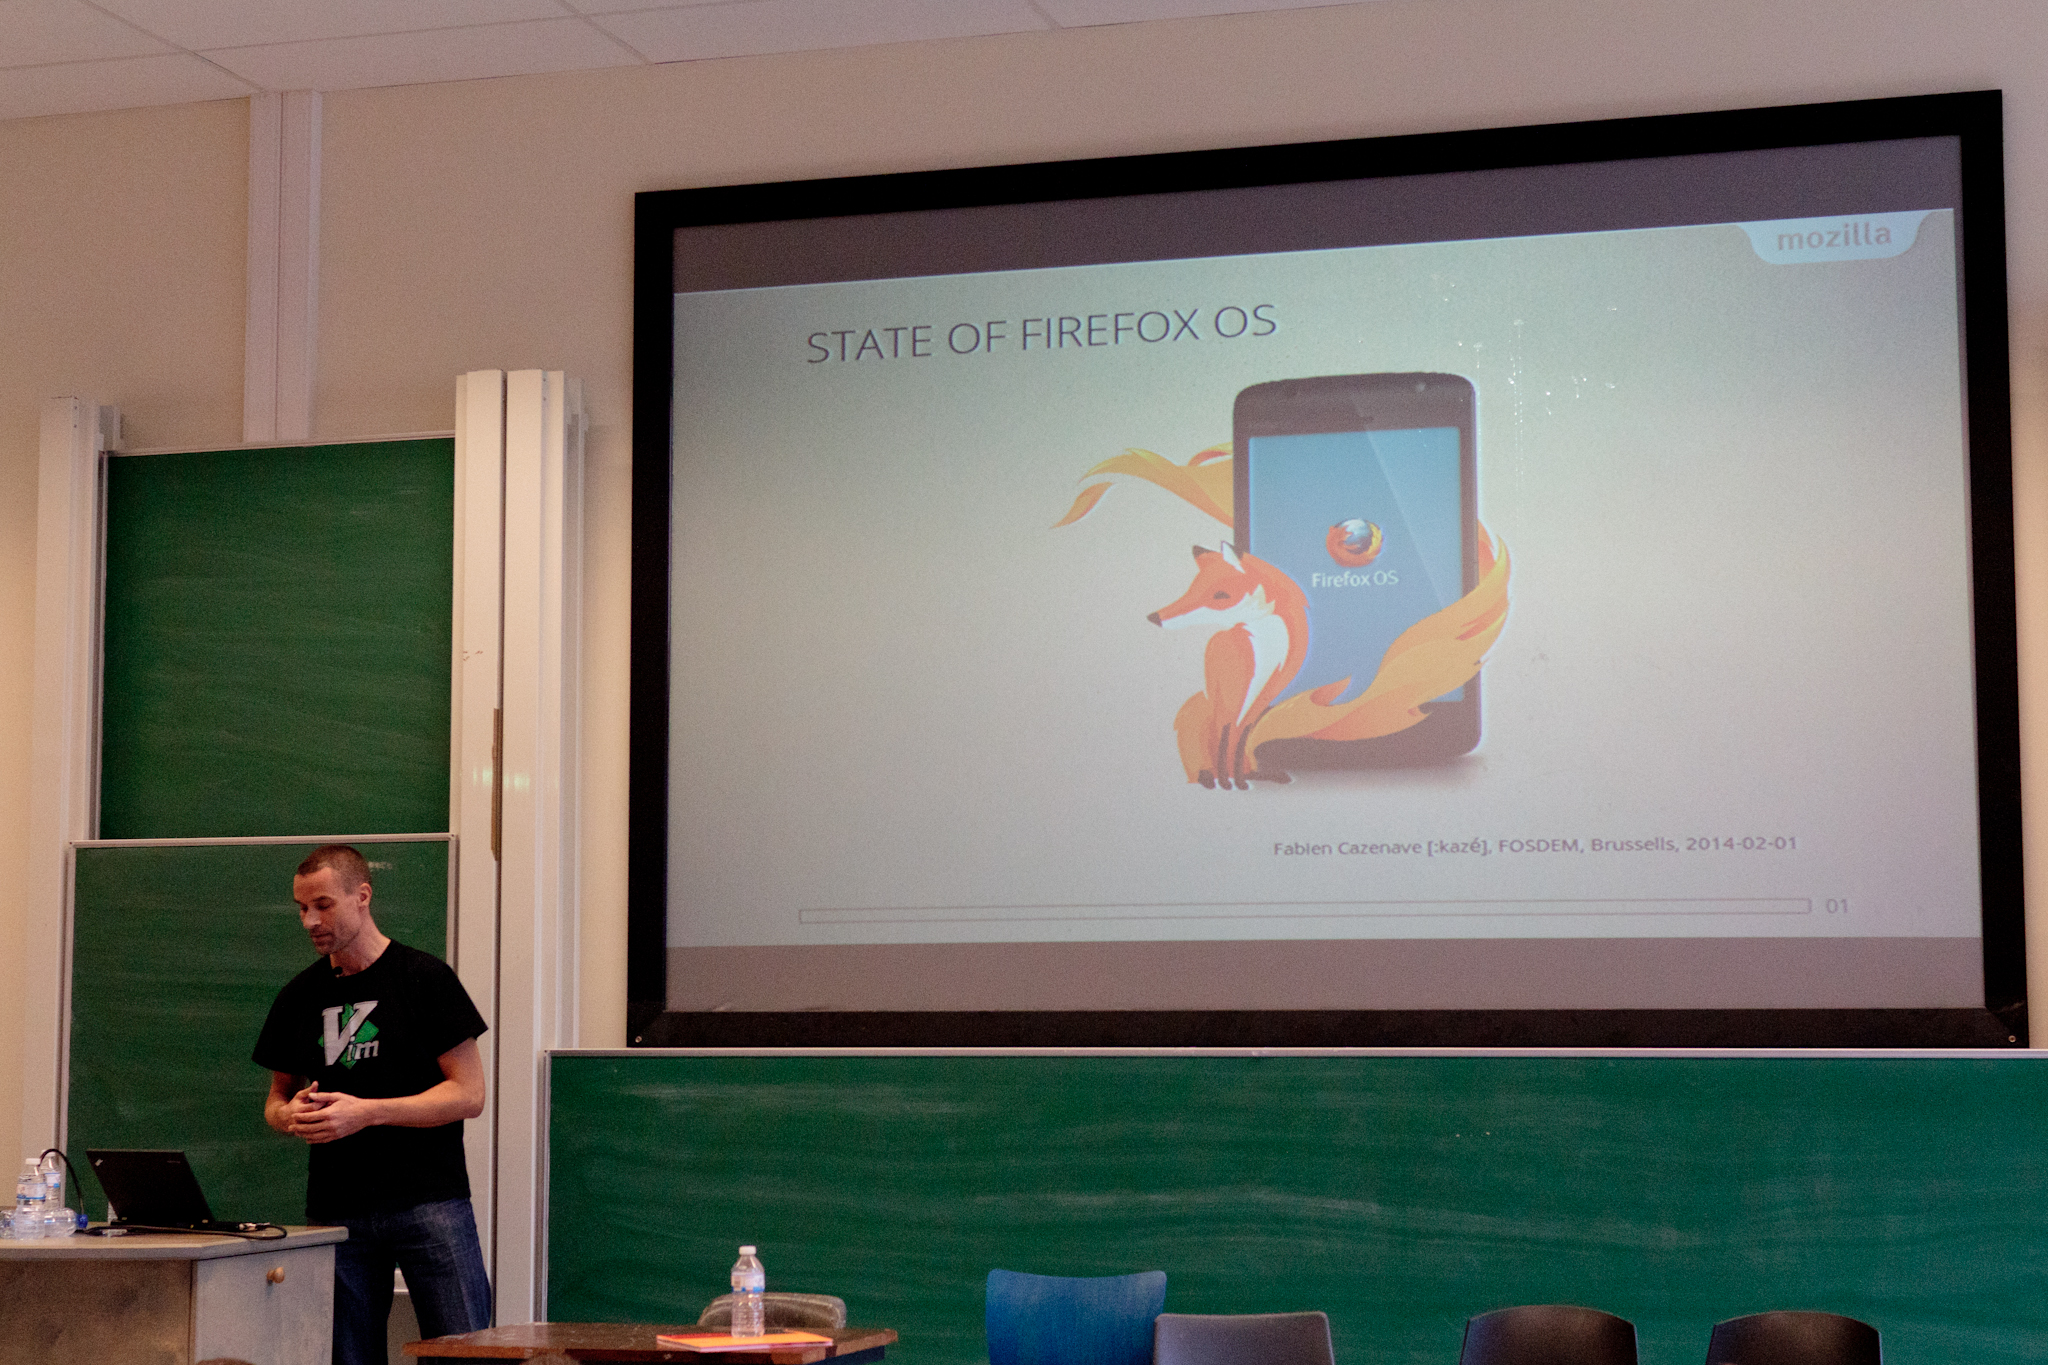 State of Firefox OS